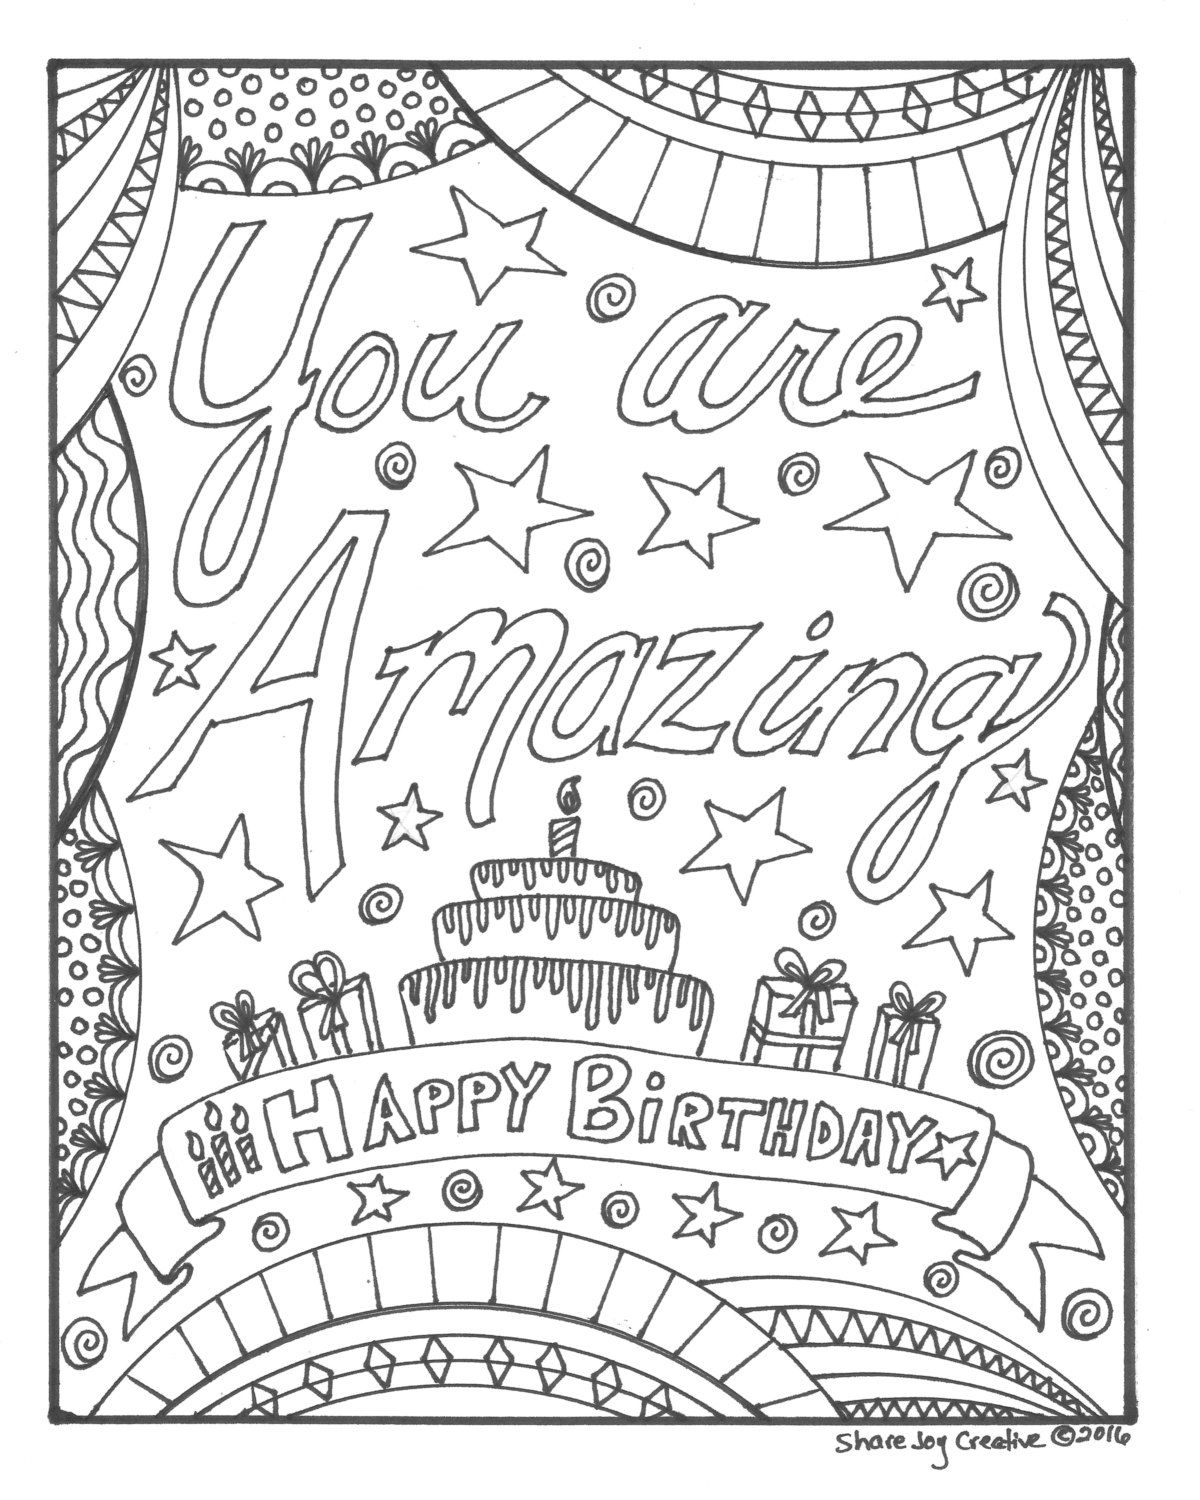 Happy Birthday Coloring Page You Are Amazing Printable Etsy In 2021 Happy Birthday Coloring Pages Birthday Coloring Pages Happy Birthday Printable